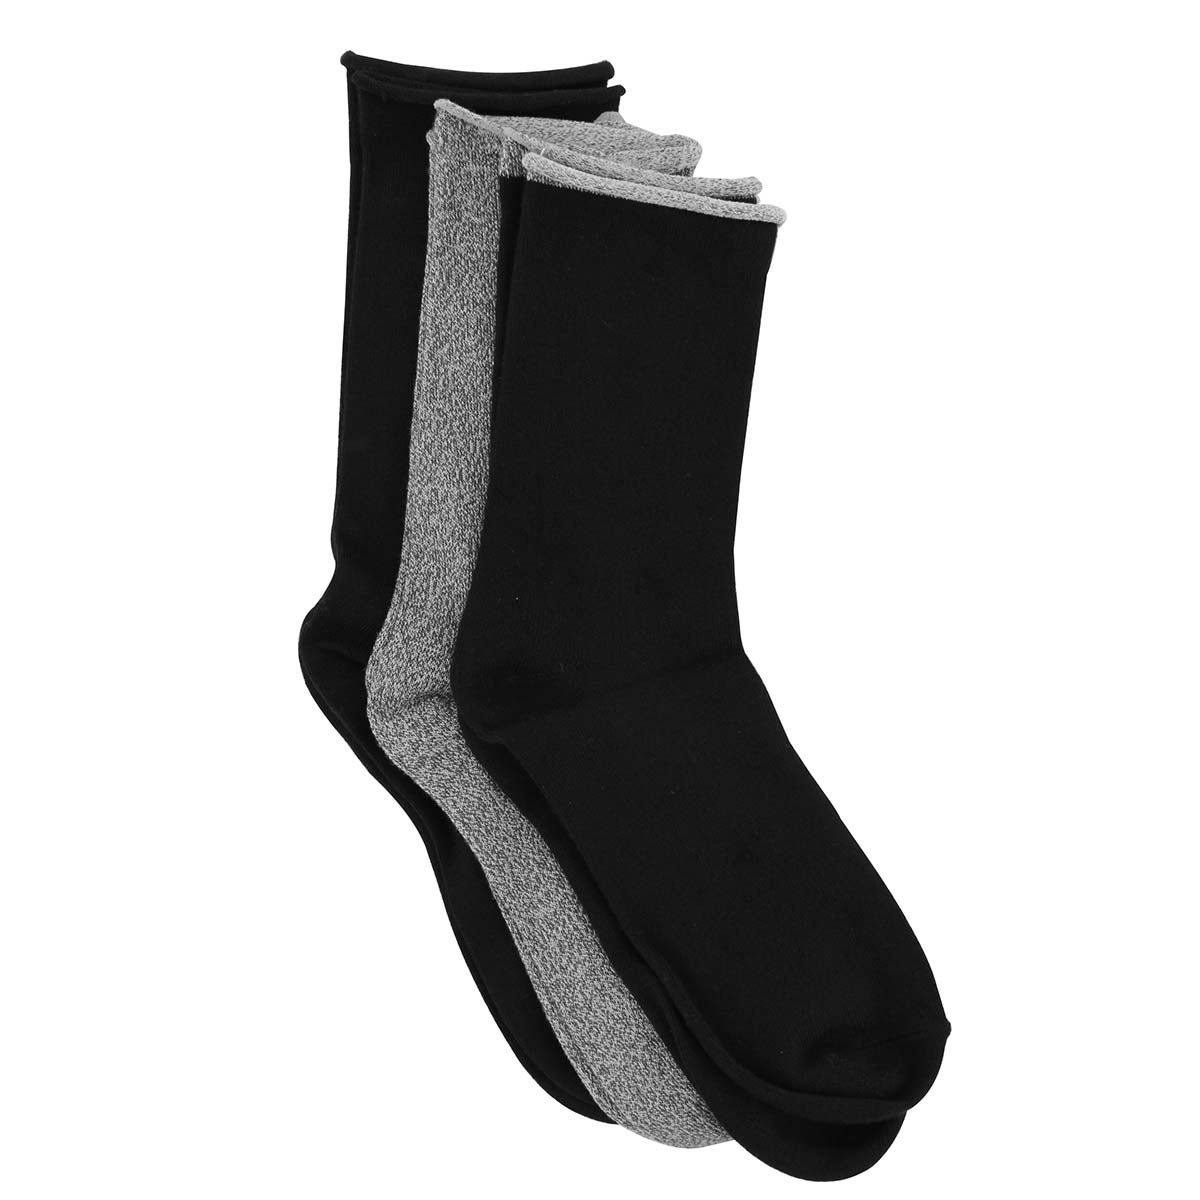 Lds Marl Tip blk/gry thick sock - 3pk